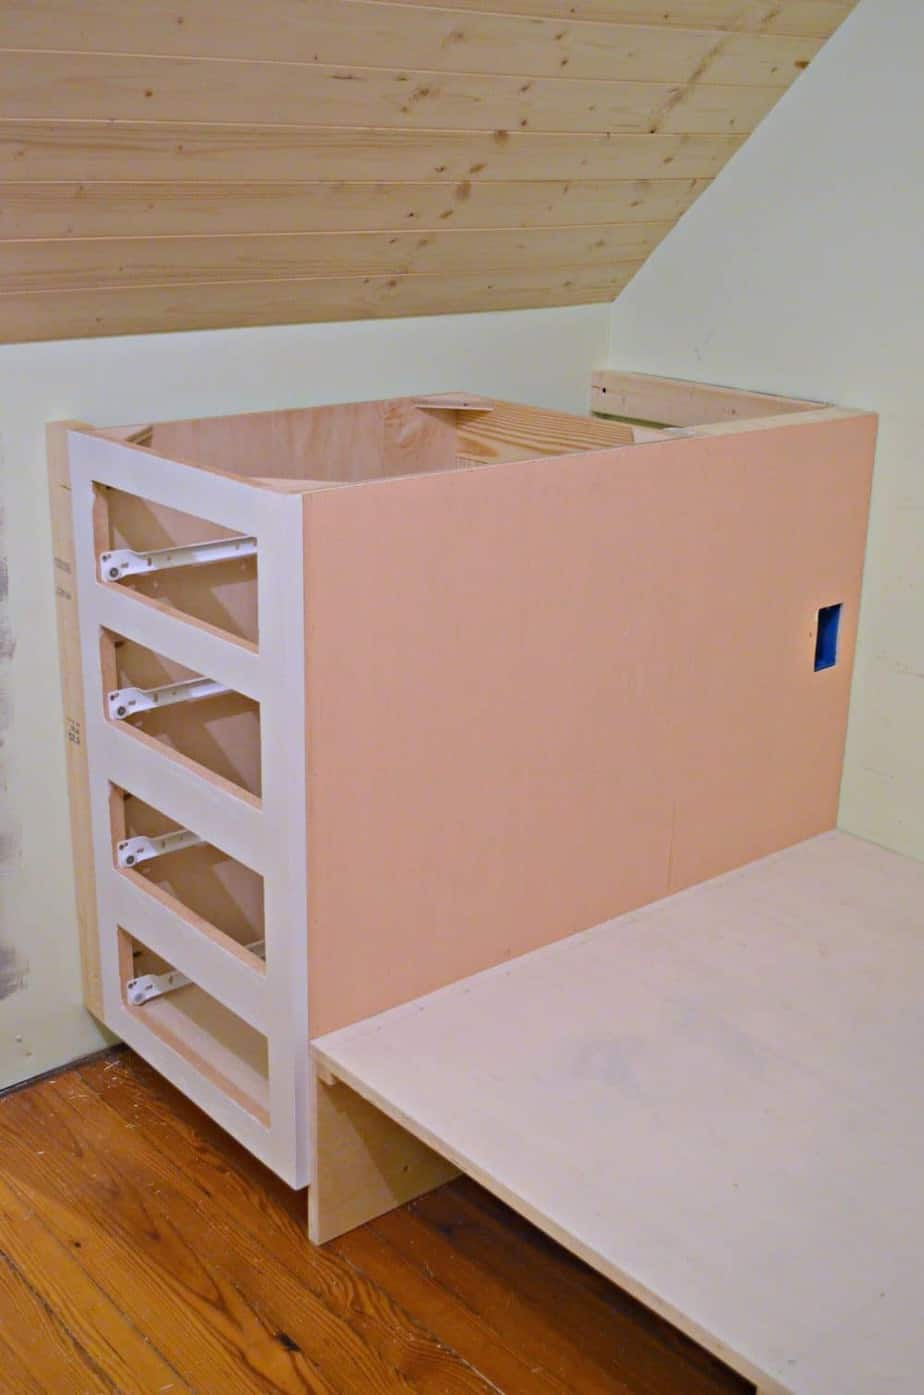 How To Make A Kitchen Cabinet How To Make A Built In Bed Using Stock Kitchen Cabinets